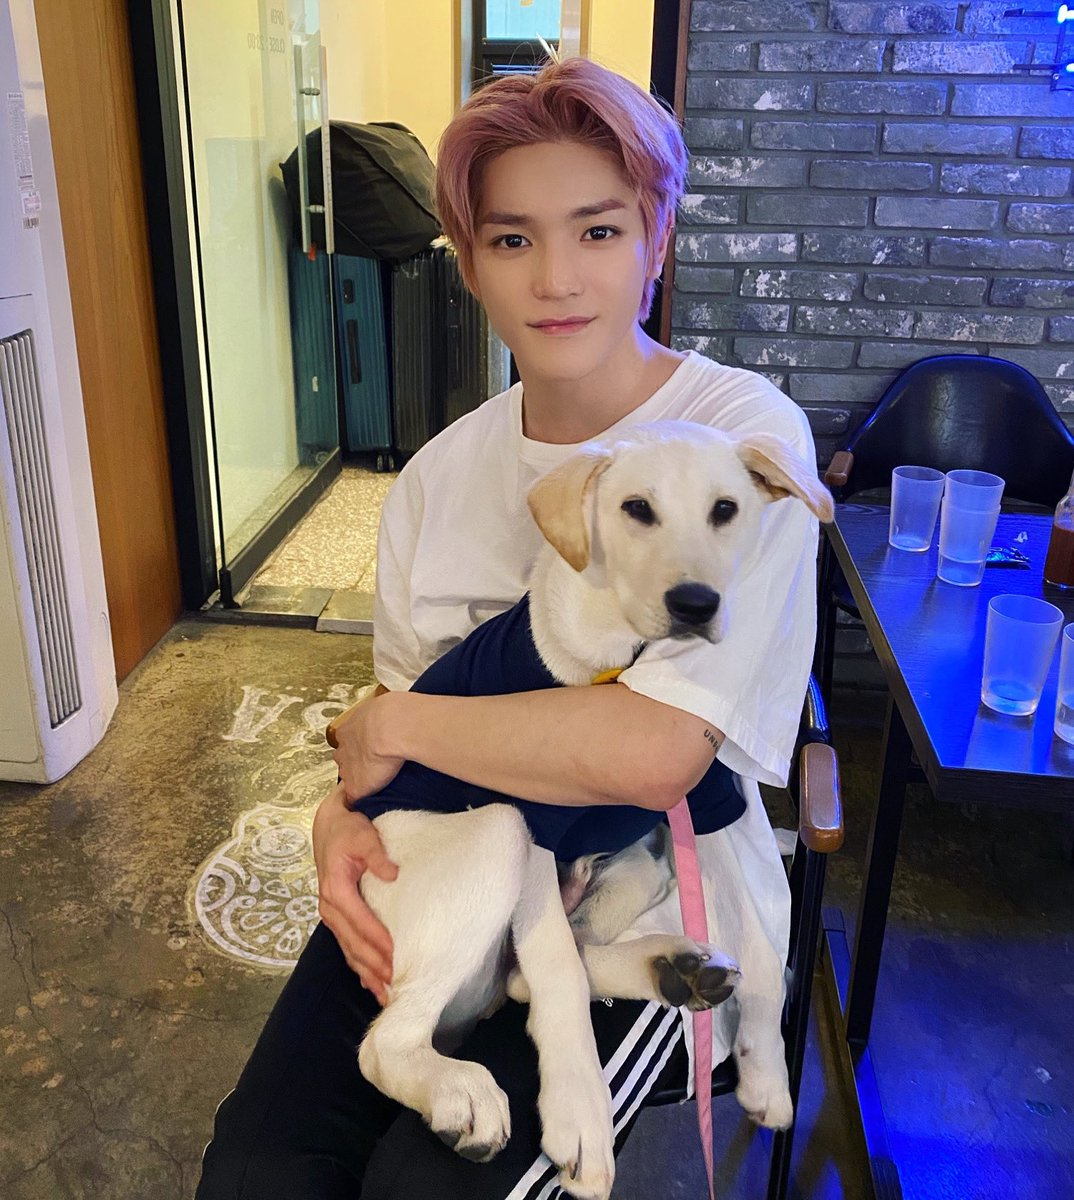 The leader of NCT127 with the new Pupnae (puppy maknae) of NCT127 💕🌹🐕💕 instagram.com/p/CANDUAIg4x_/…